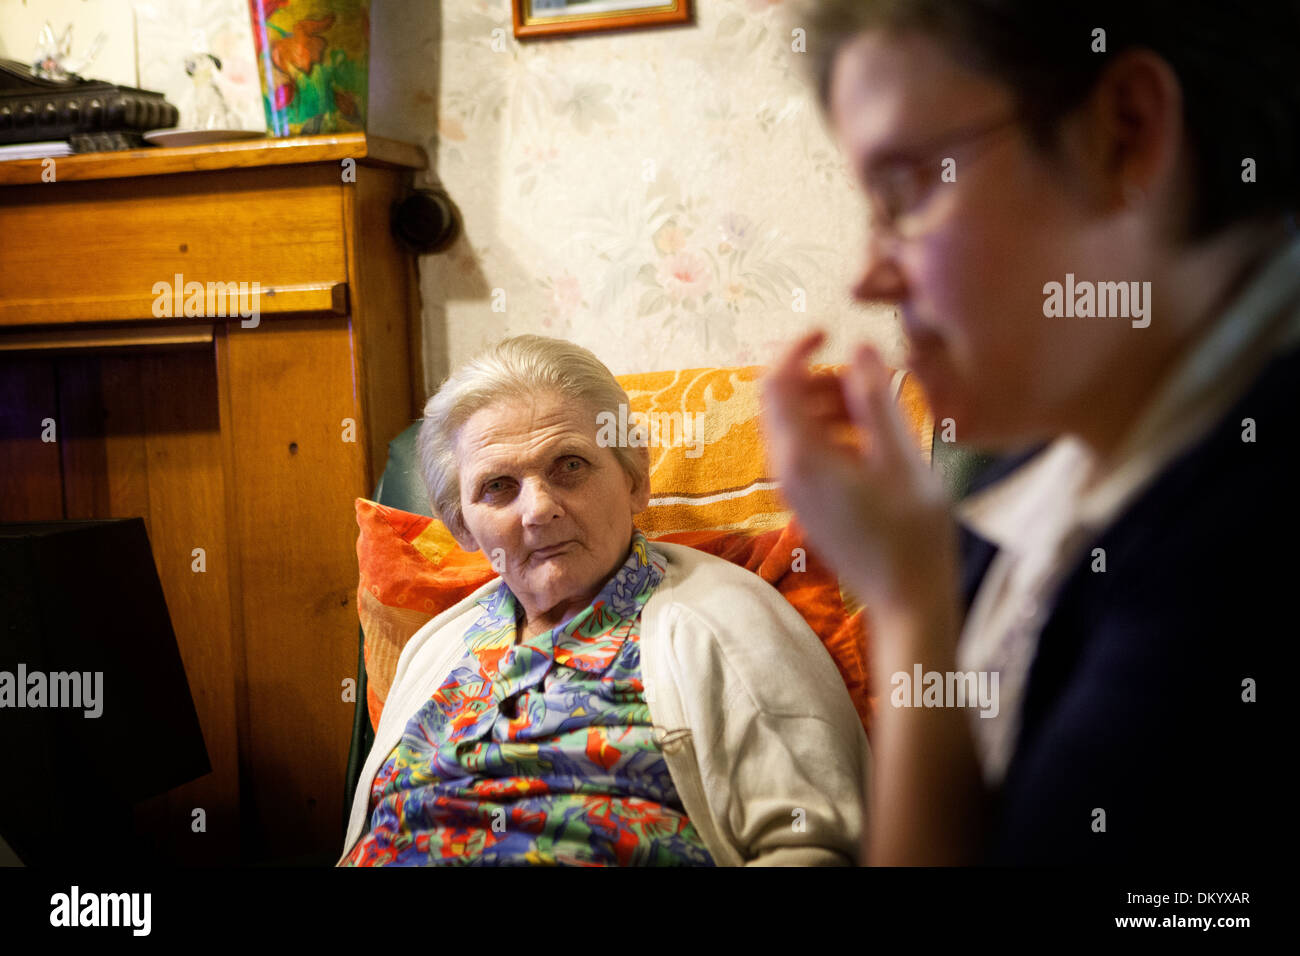 FAMILY CAREGIVER - Stock Image